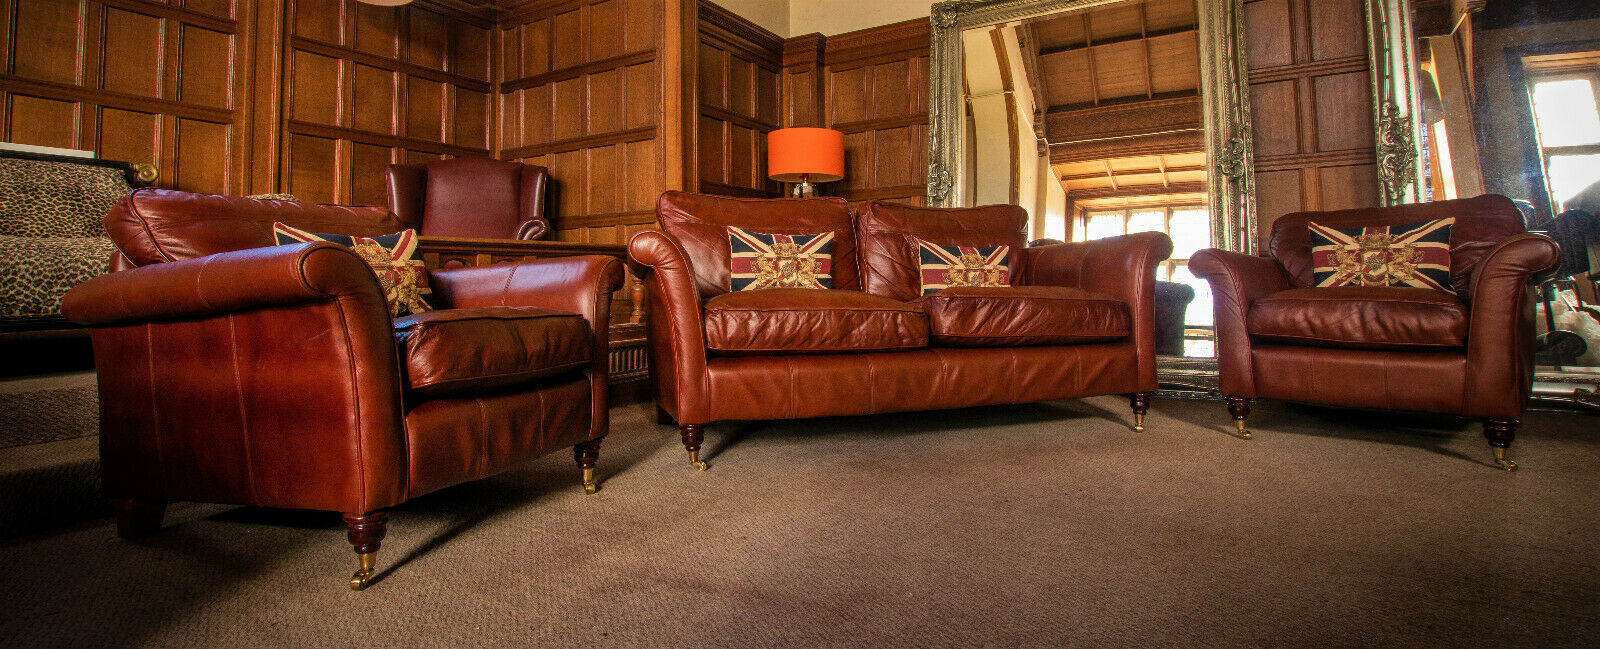 F50 1270 Victorian Style Brandy Antique Tan Leather Suite